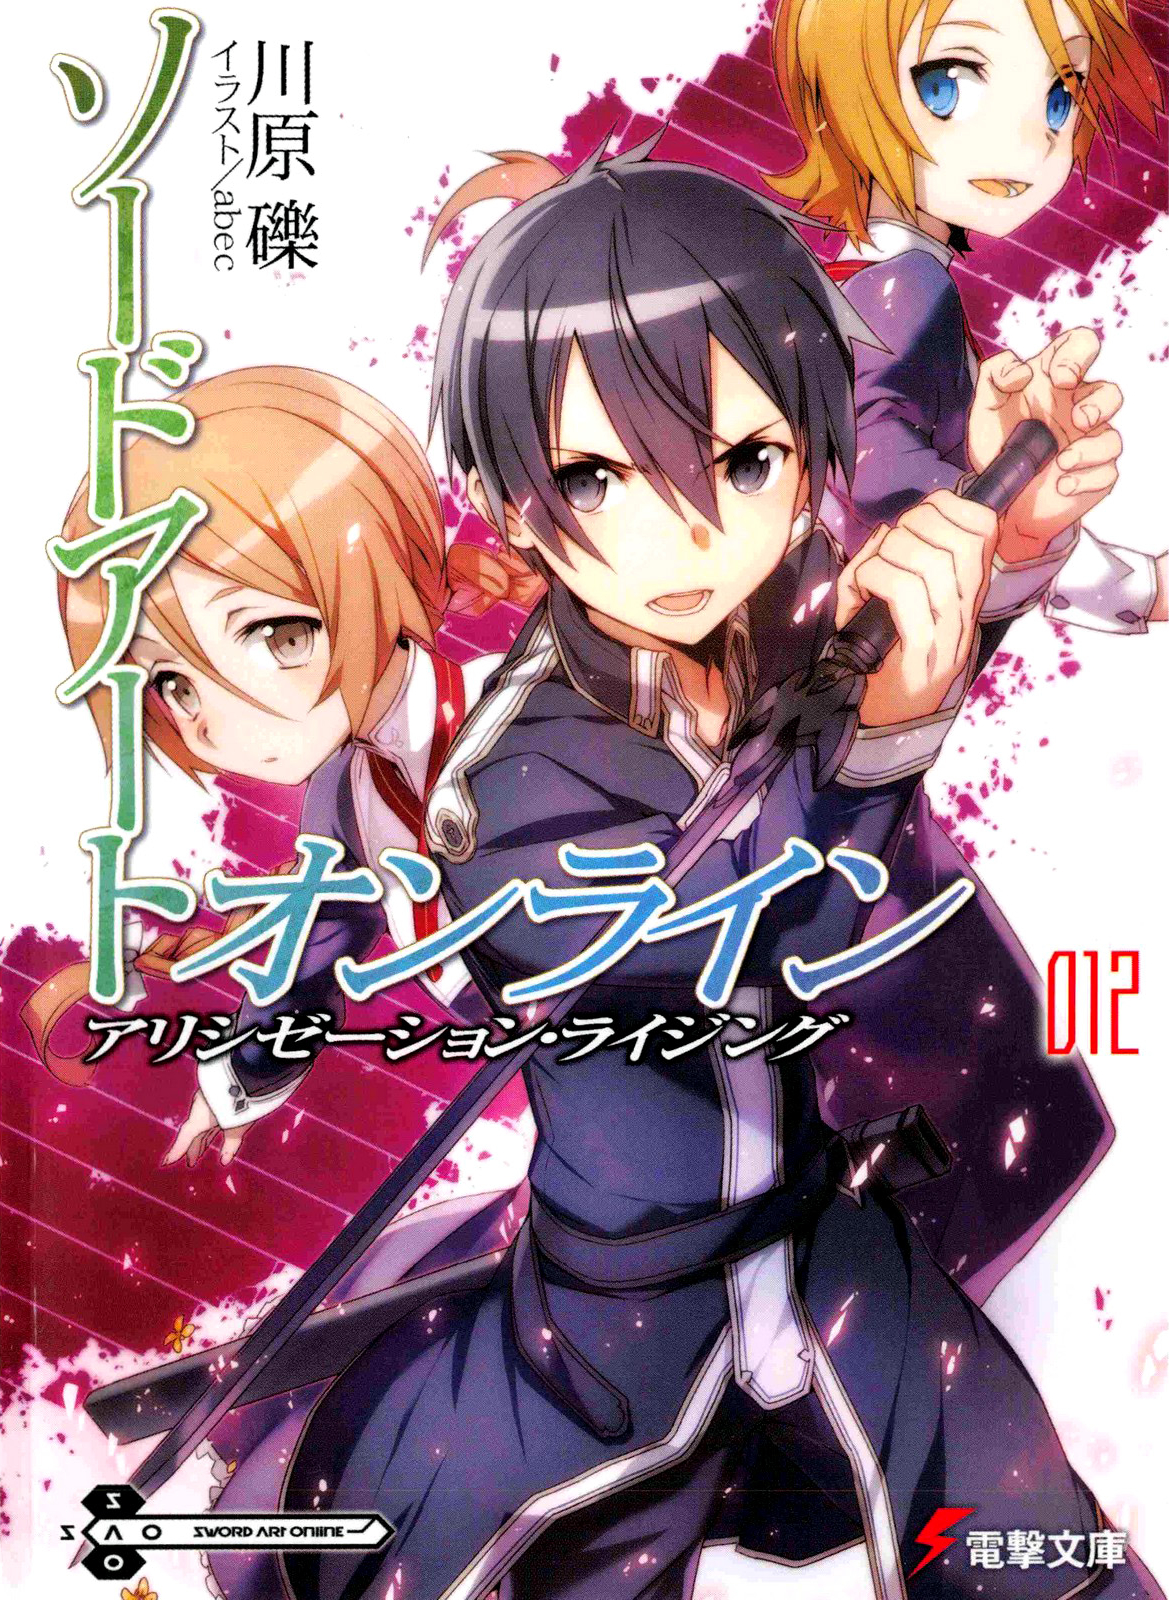 Front cover of Sword Art Online Vol 12: Alizication Rising. With two more... uhh... girls for Kirito.